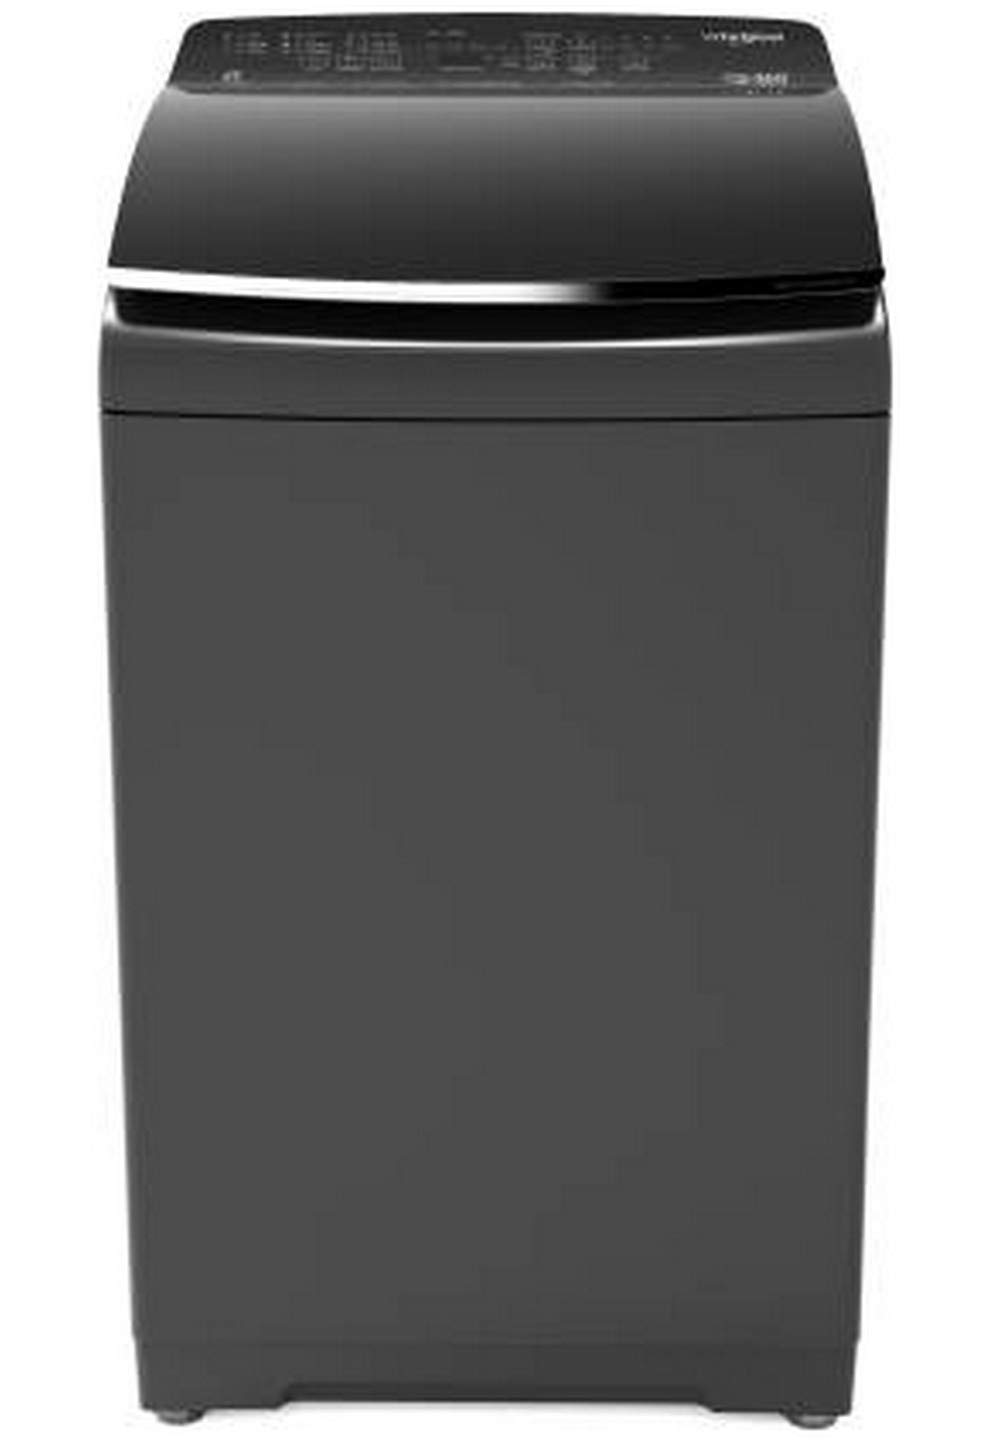 Whirlpool 7.5 kg Fully-Automatic Top Loading Washing Machine (360° Bloomwash Pro 7.5, Graphite)